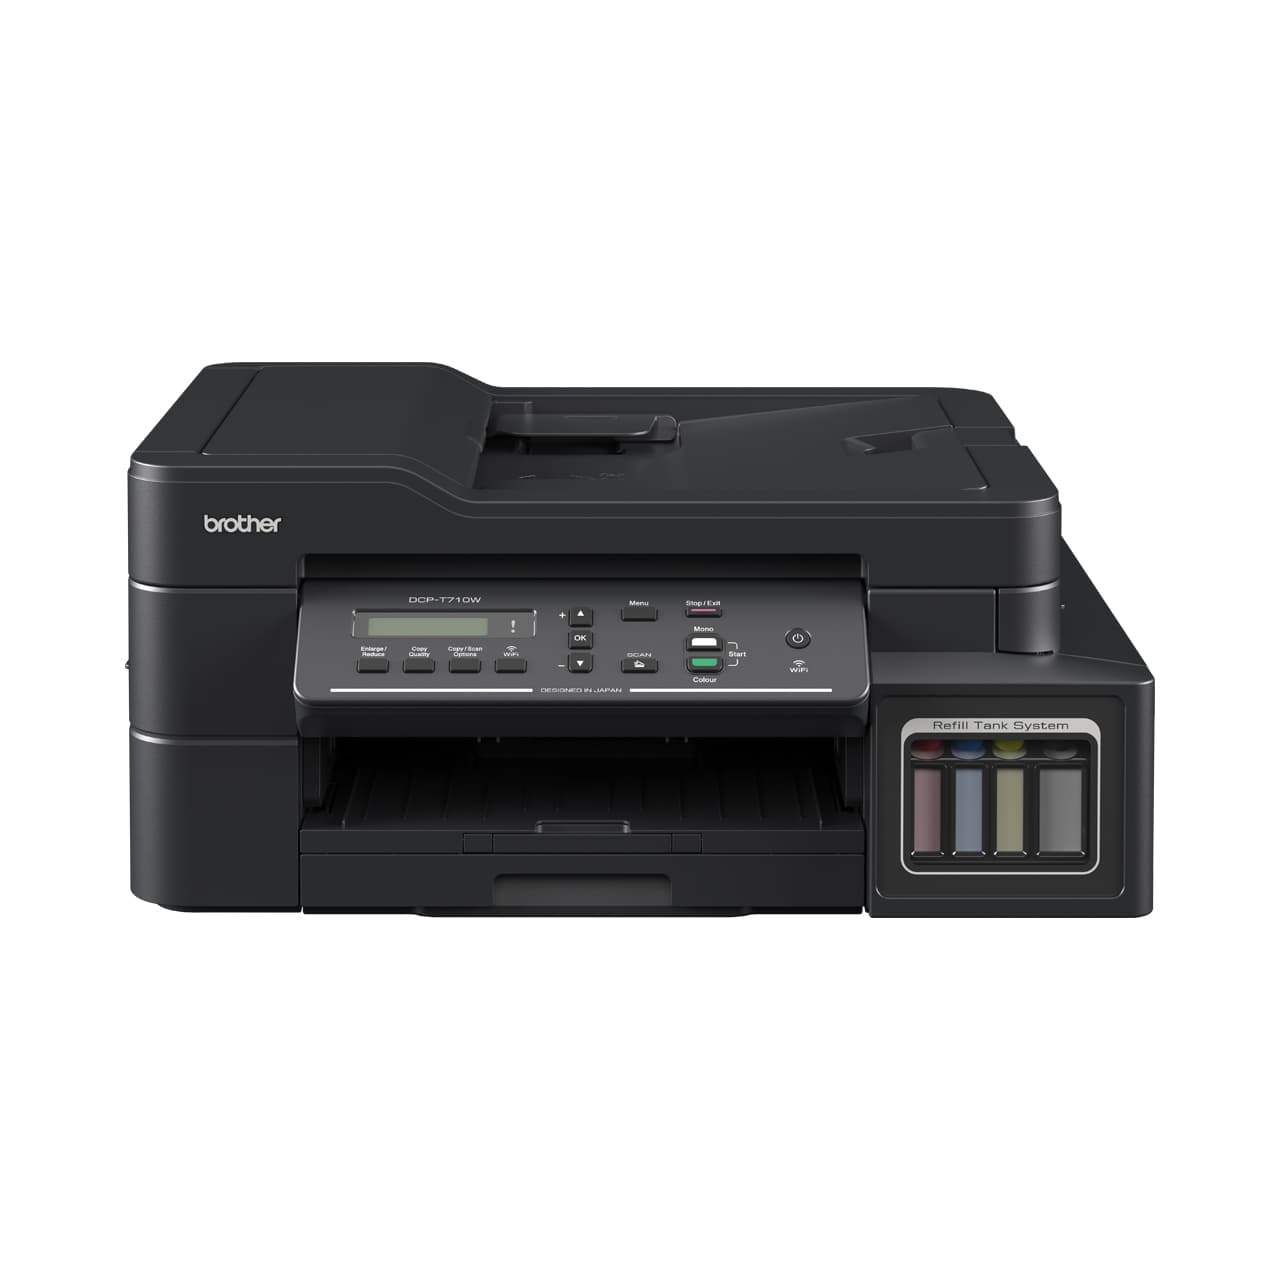 Brother Printer DCP-T710W Ink Tank System - WiFi Mobile Print Scan Copy ADF